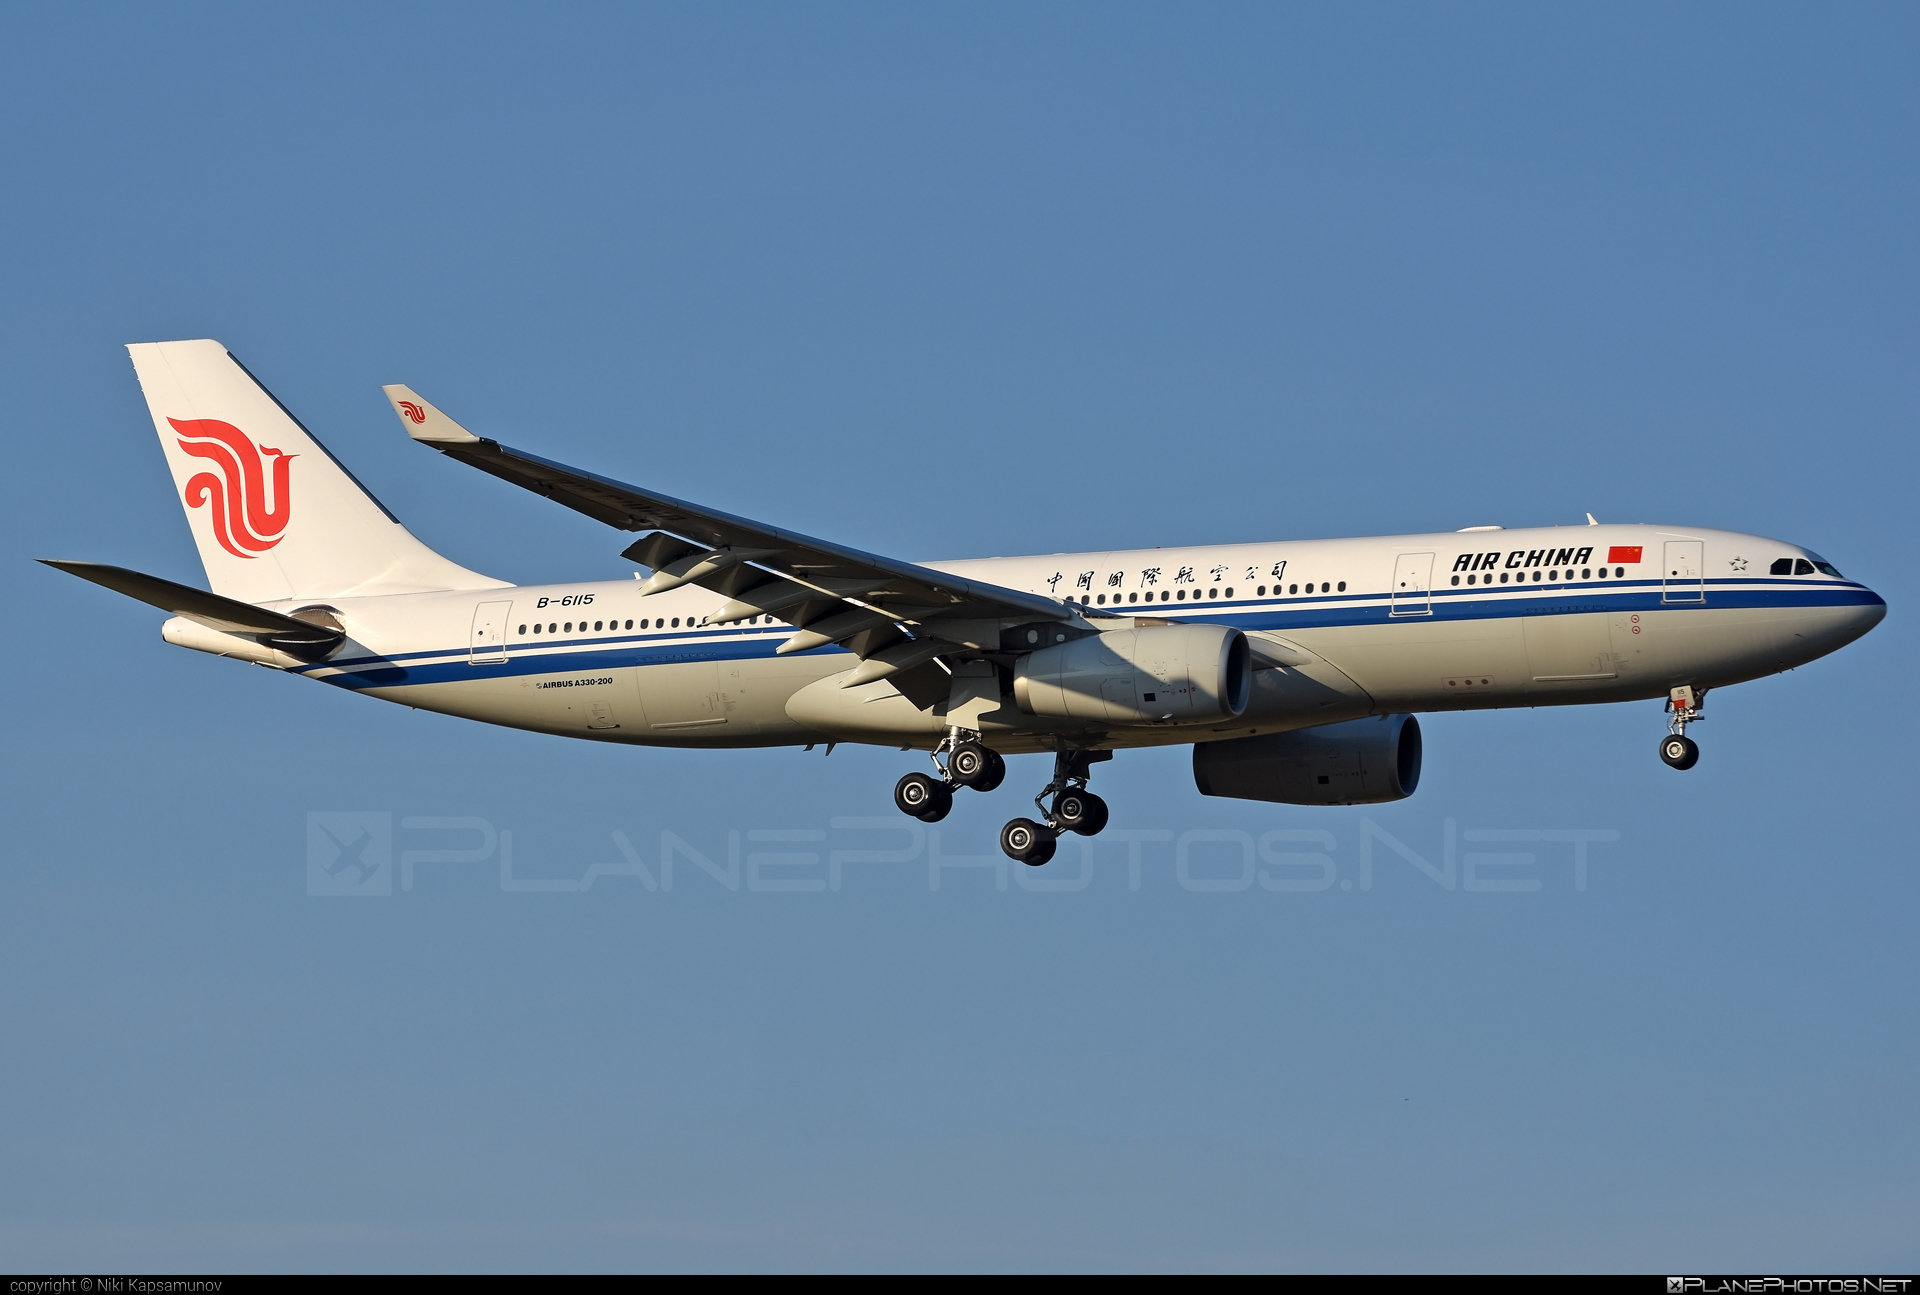 Airbus A330-243 - B-6115 operated by Air China #a330 #a330family #airbus #airbus330 #airchina